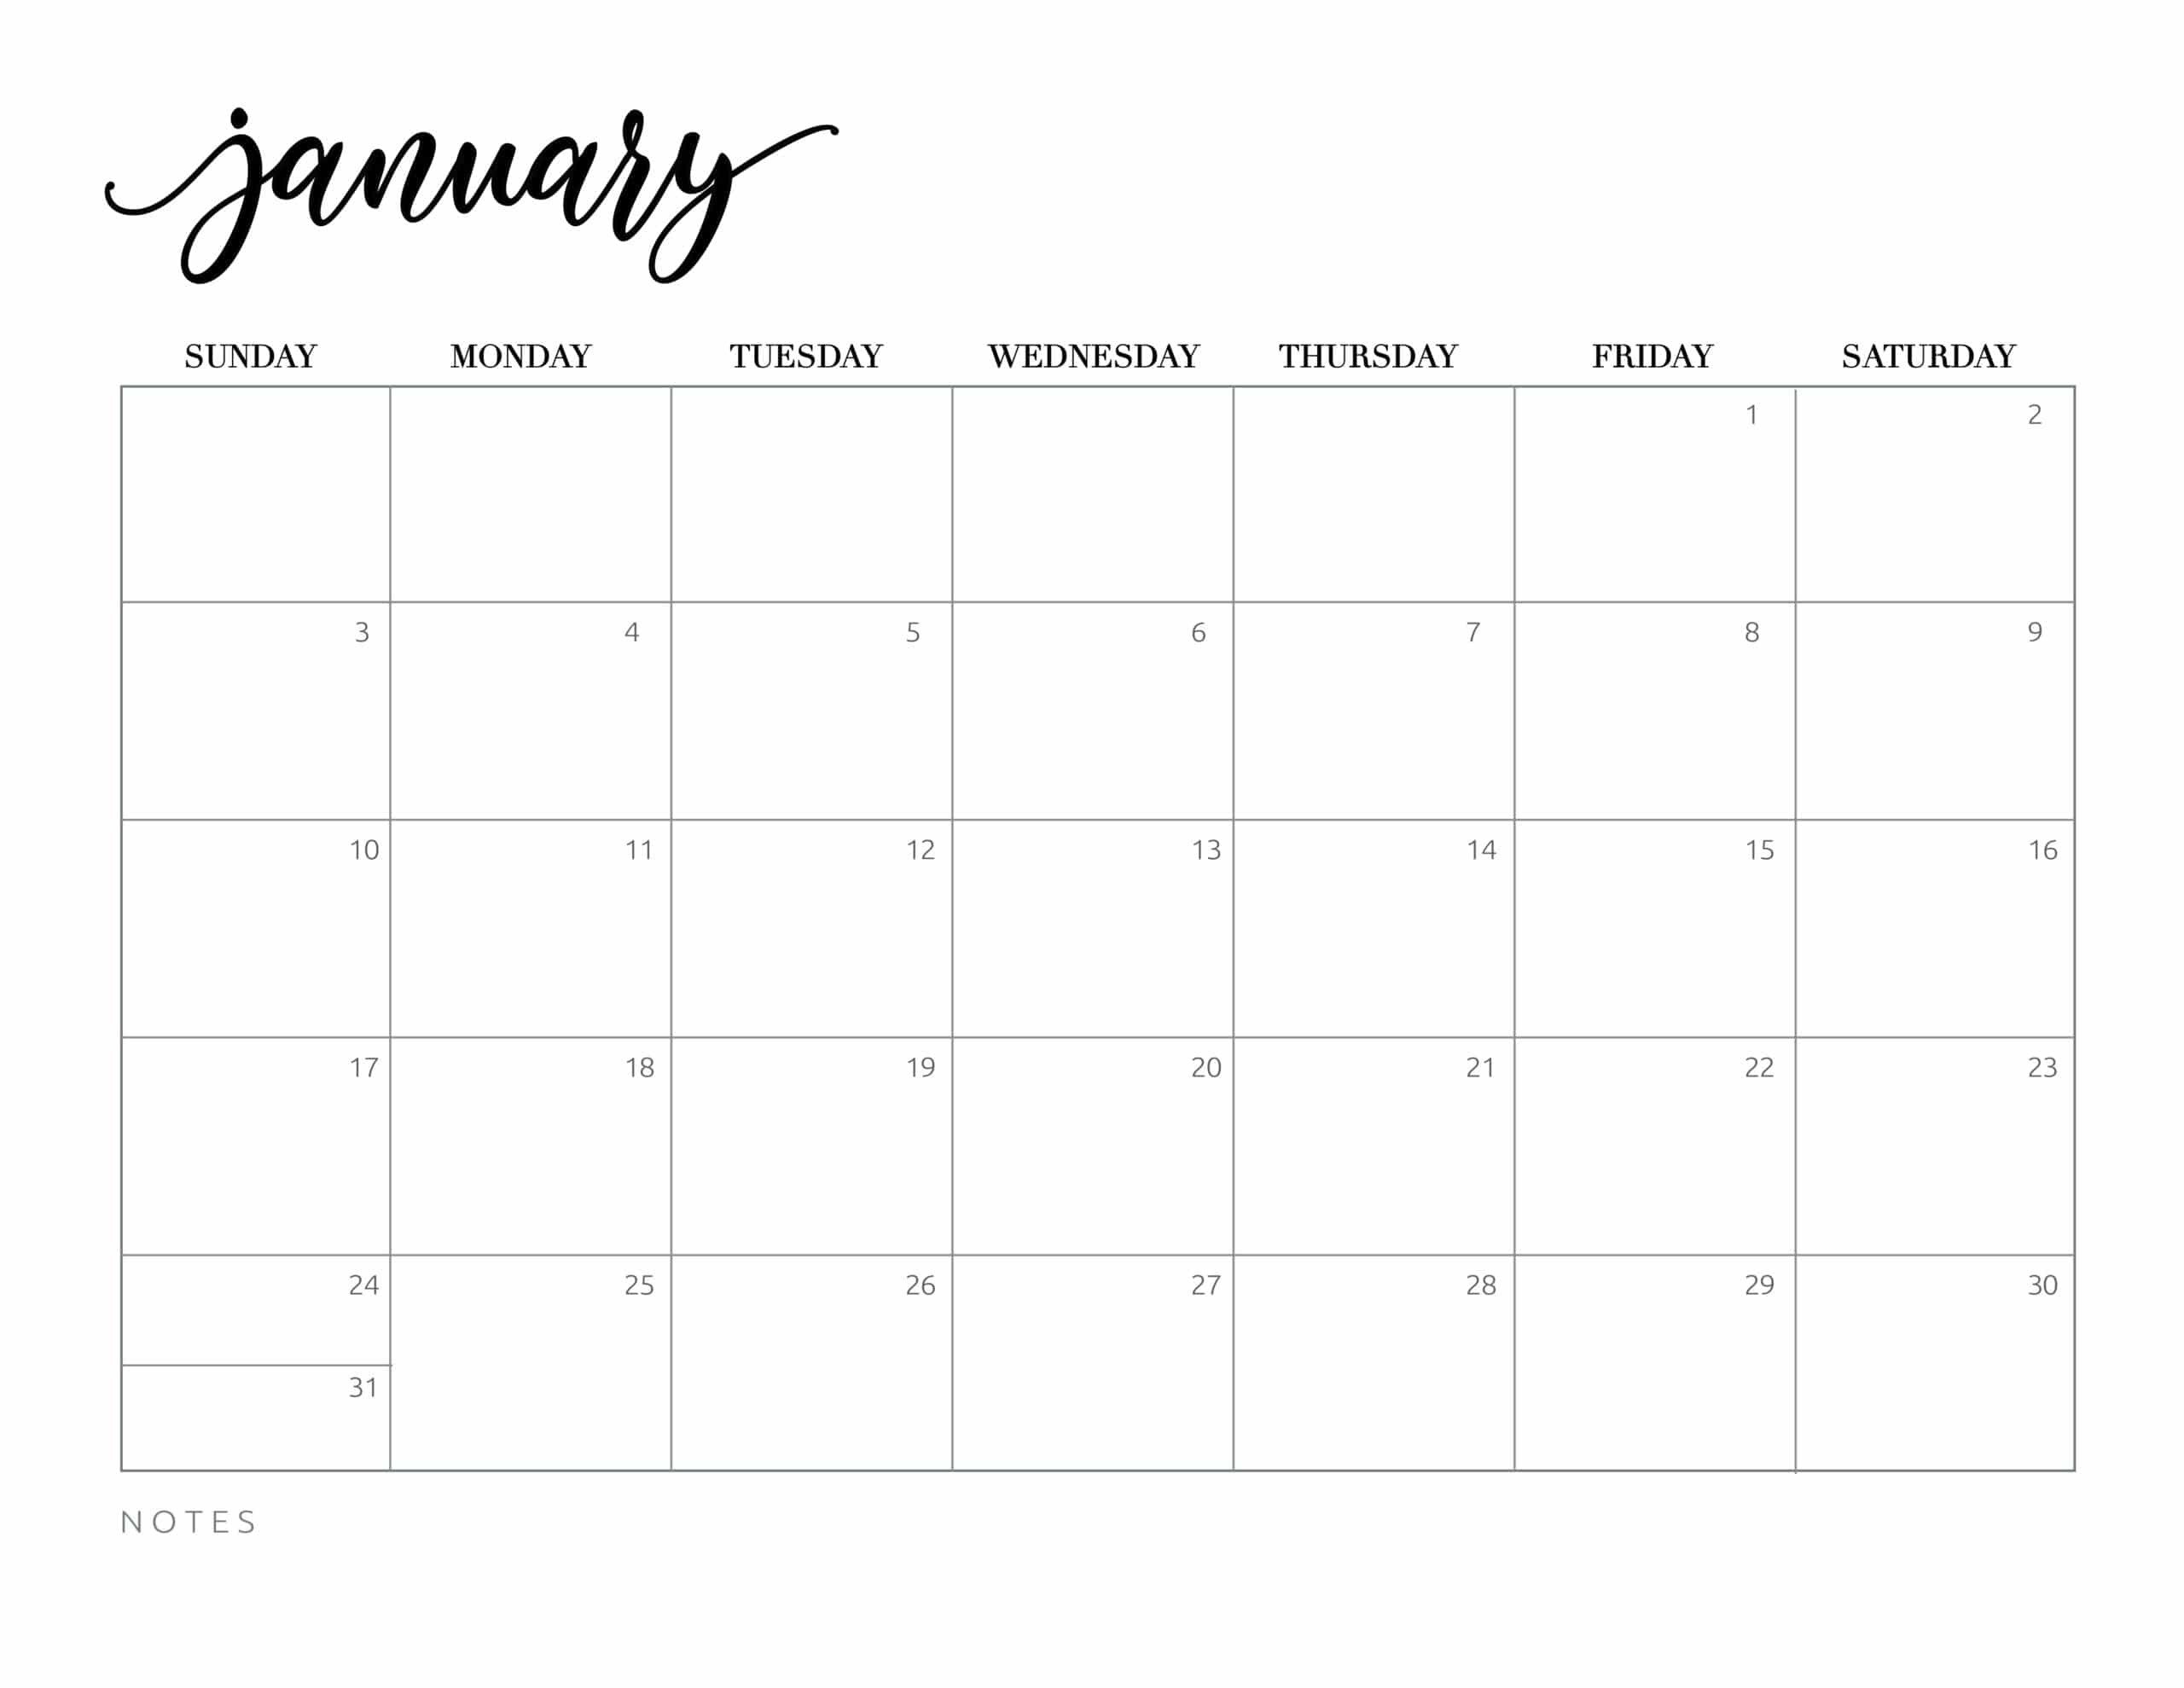 Free Printable 2021 Calendar - World Of Printables-2021 Calendars To Fill In And Print